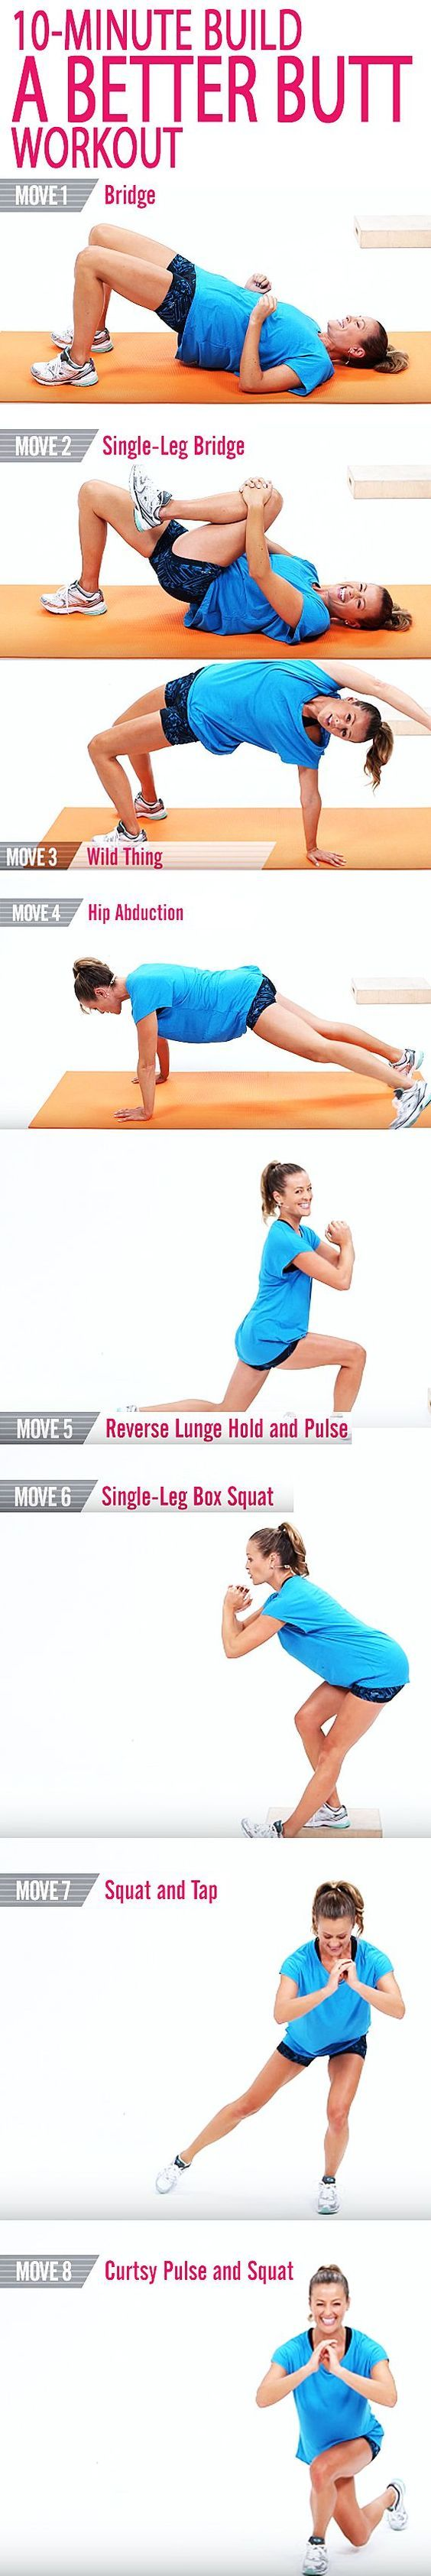 It's time to shape and tone your butt. This 10-minute workout is full of power moves to strengthen your glutes while giving the backside a serious lift. And you don't need any weights for this, so press play and start working it!